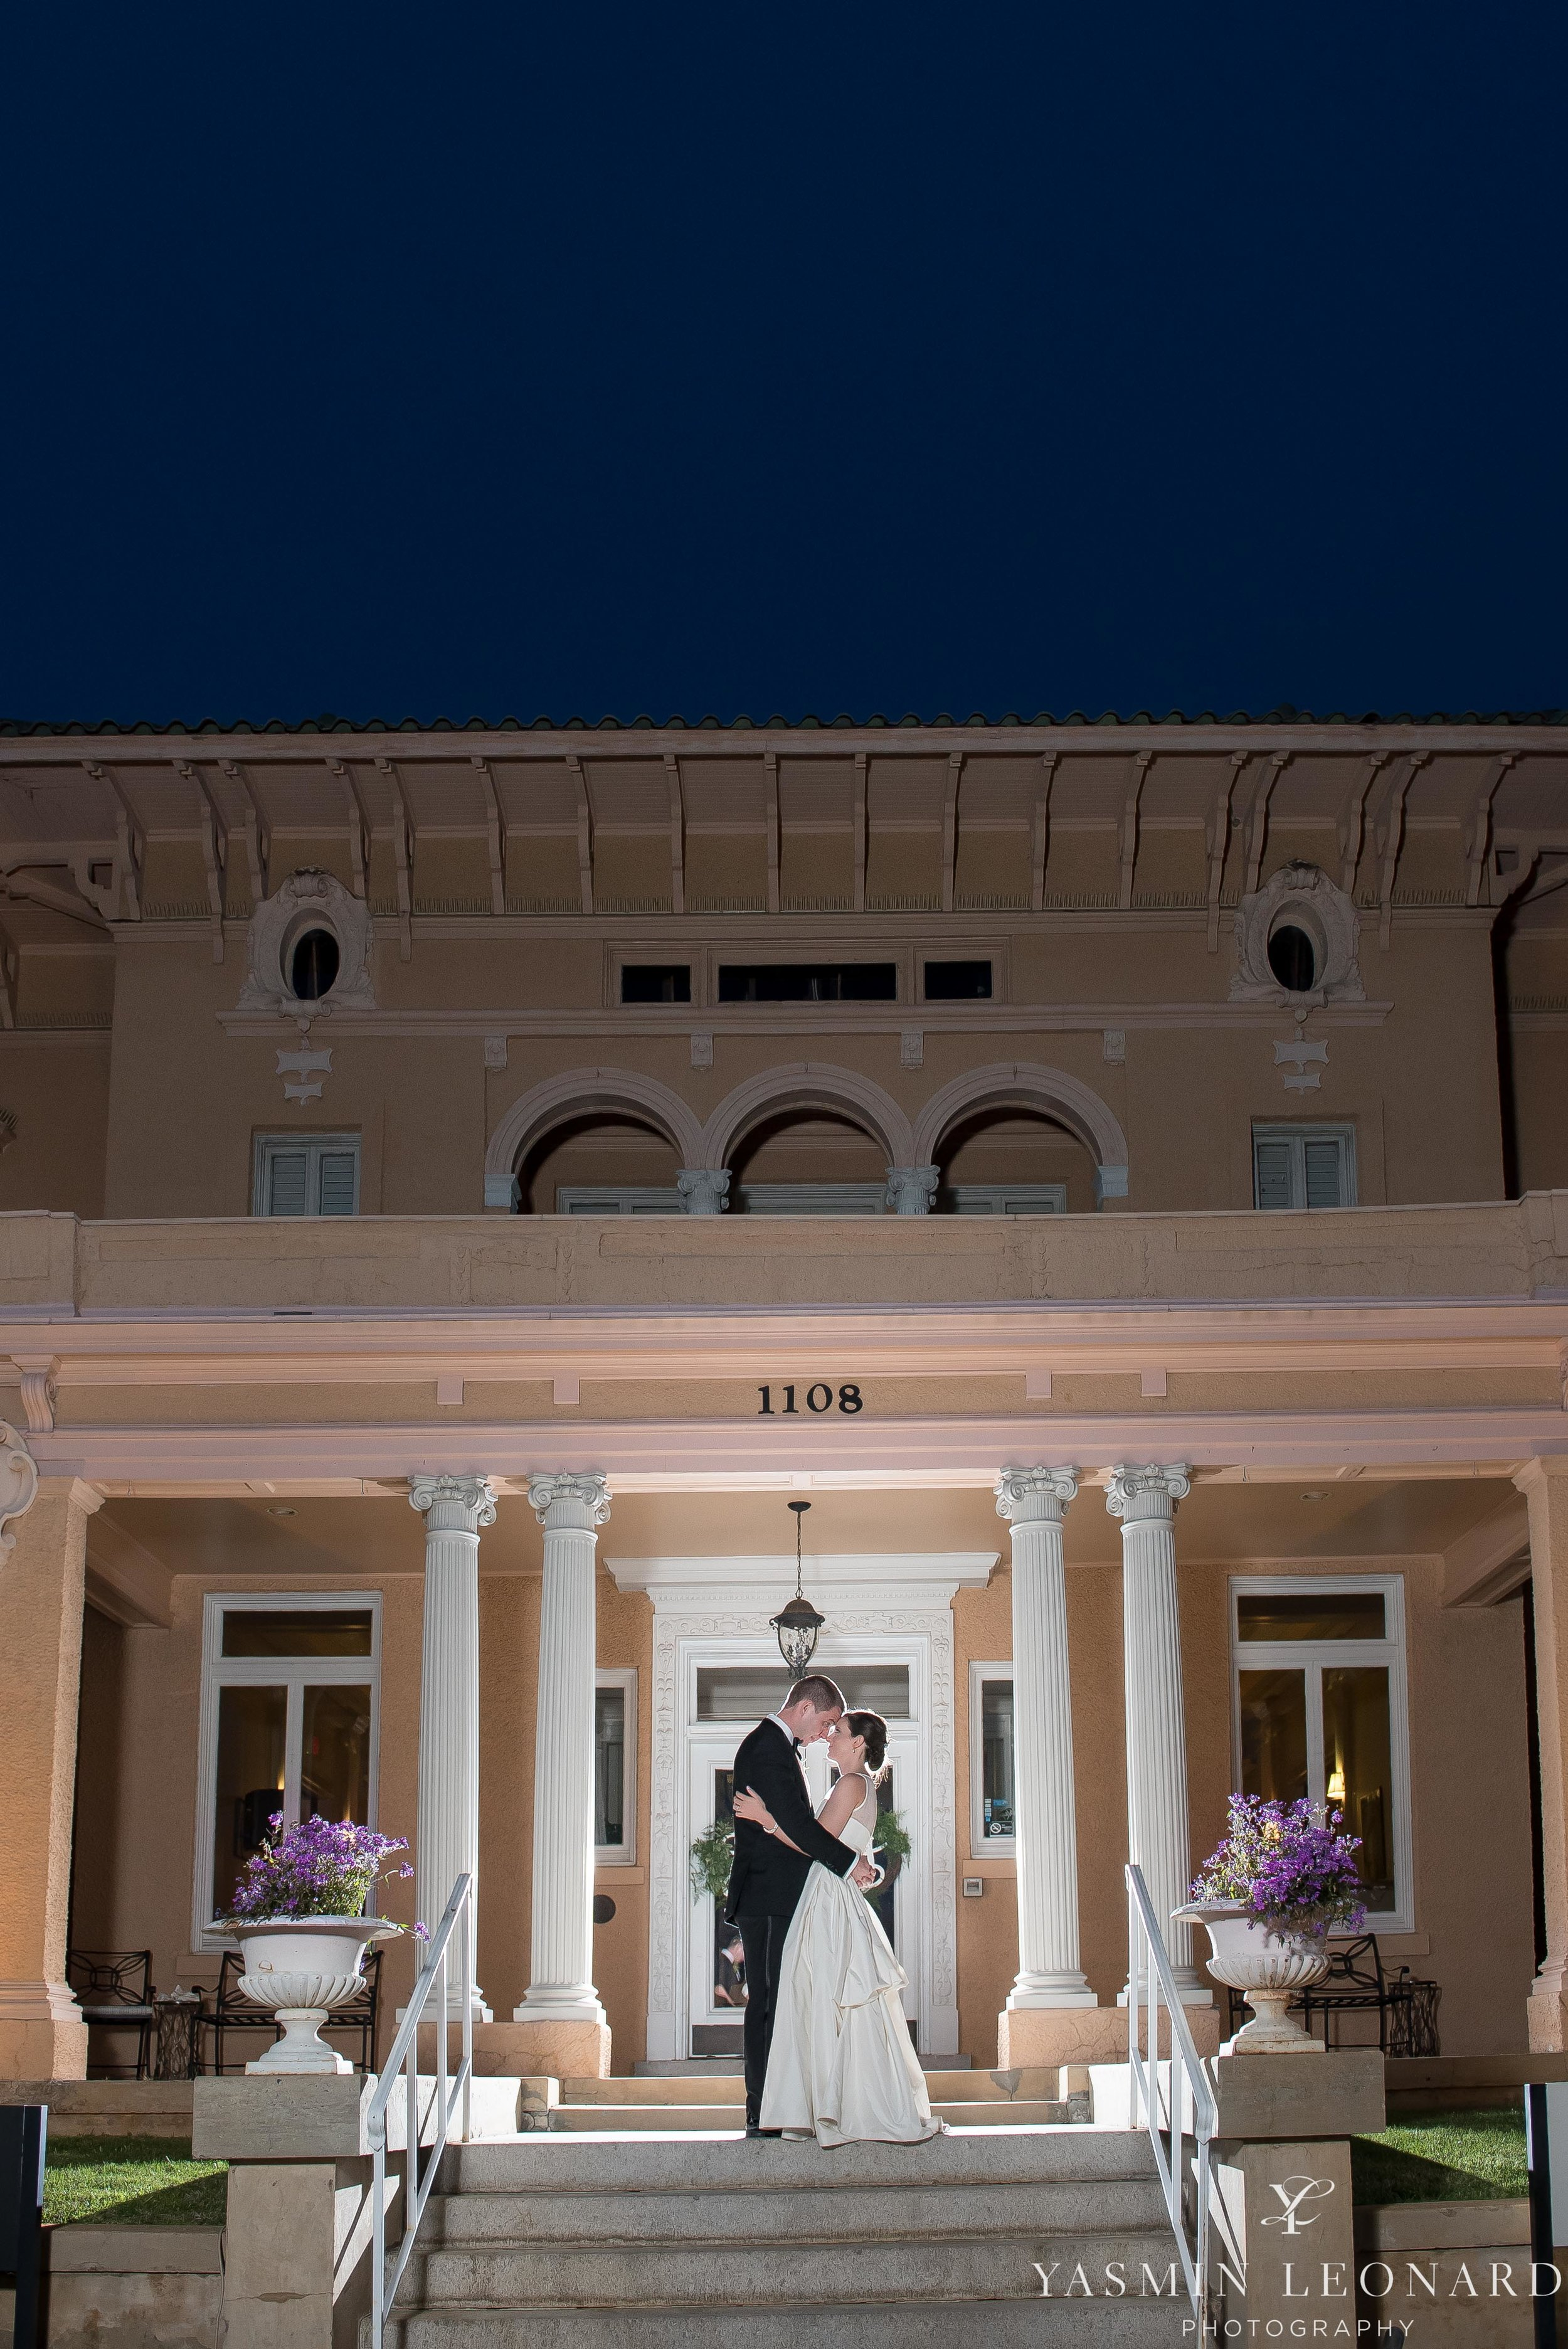 JH ADAMS INN - HIGH POINT UNIVERSITY CHAPEL WEDDING - HPU CHAPEL - HIGH POINT WEDDINGS - NC WEDDING PHOTOGRAPHER - YASMIN LEONARD PHOTOGRAPHY - HIGH POINT NC - HIGH POINT WEDDINGS -66.jpg